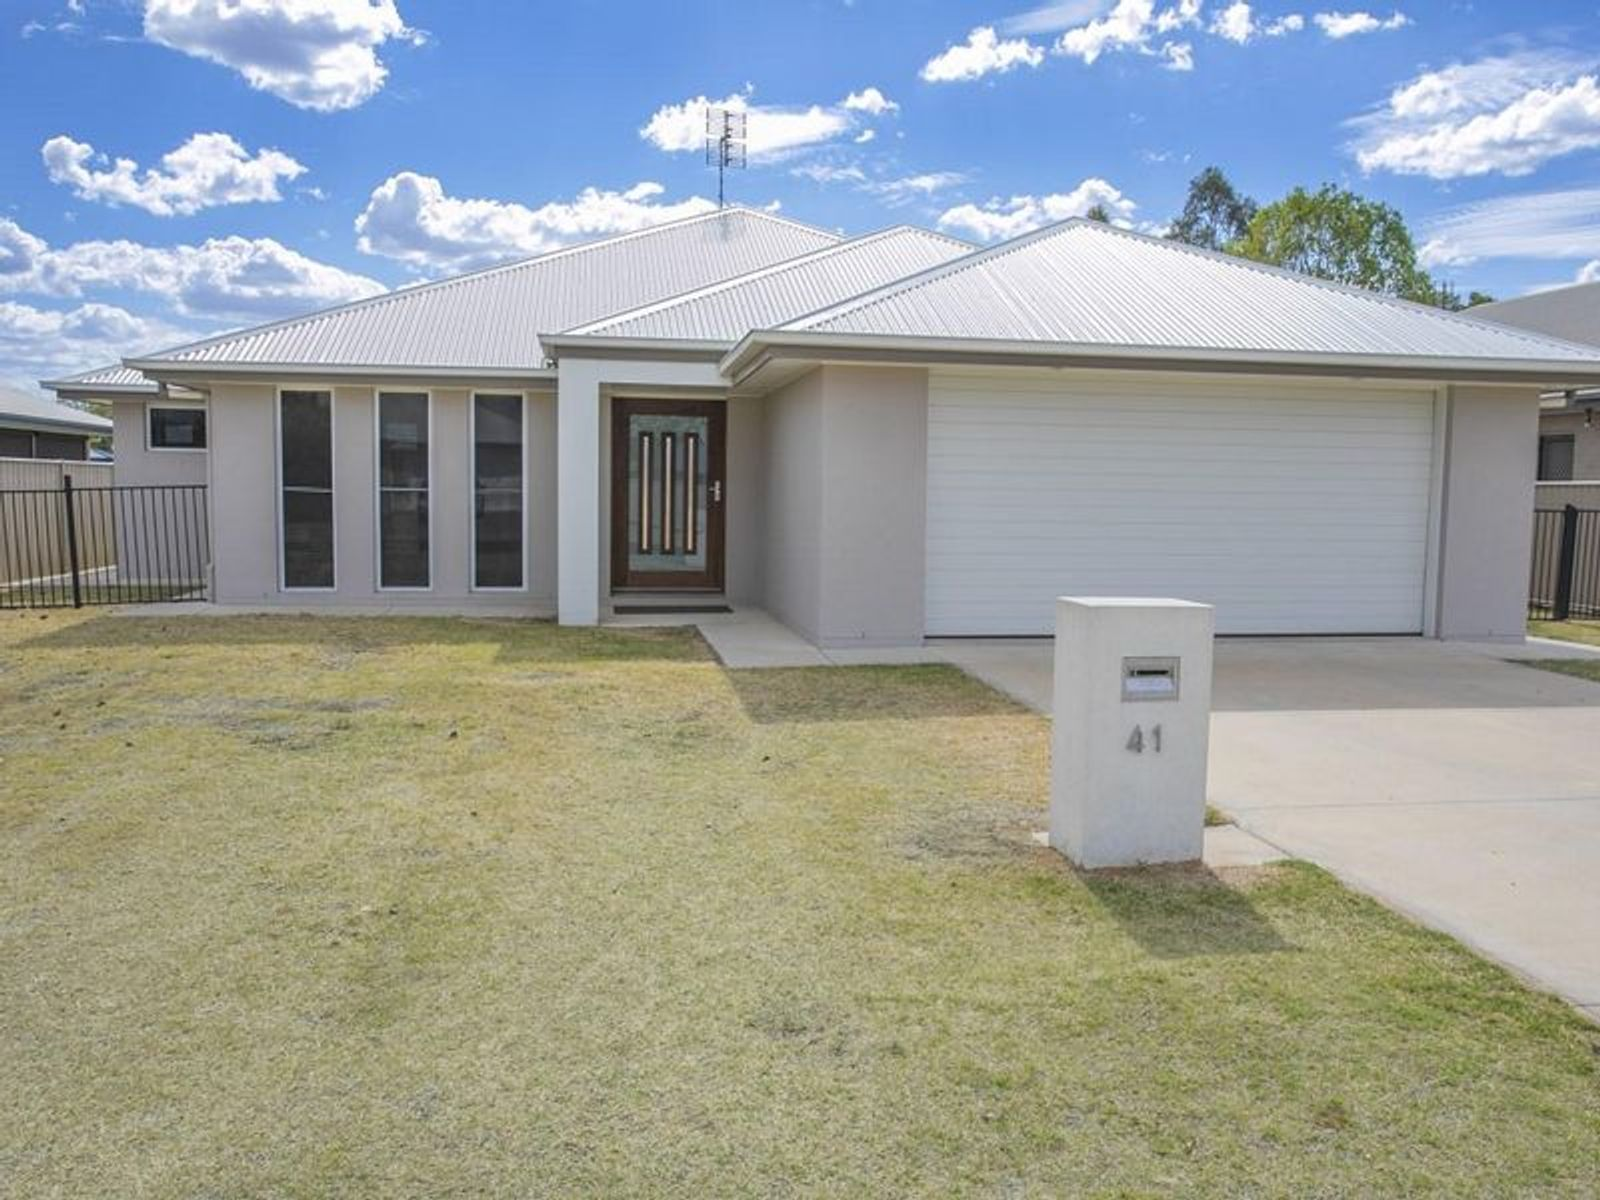 41 Sommerfeld Crescent, Chinchilla, QLD 4413